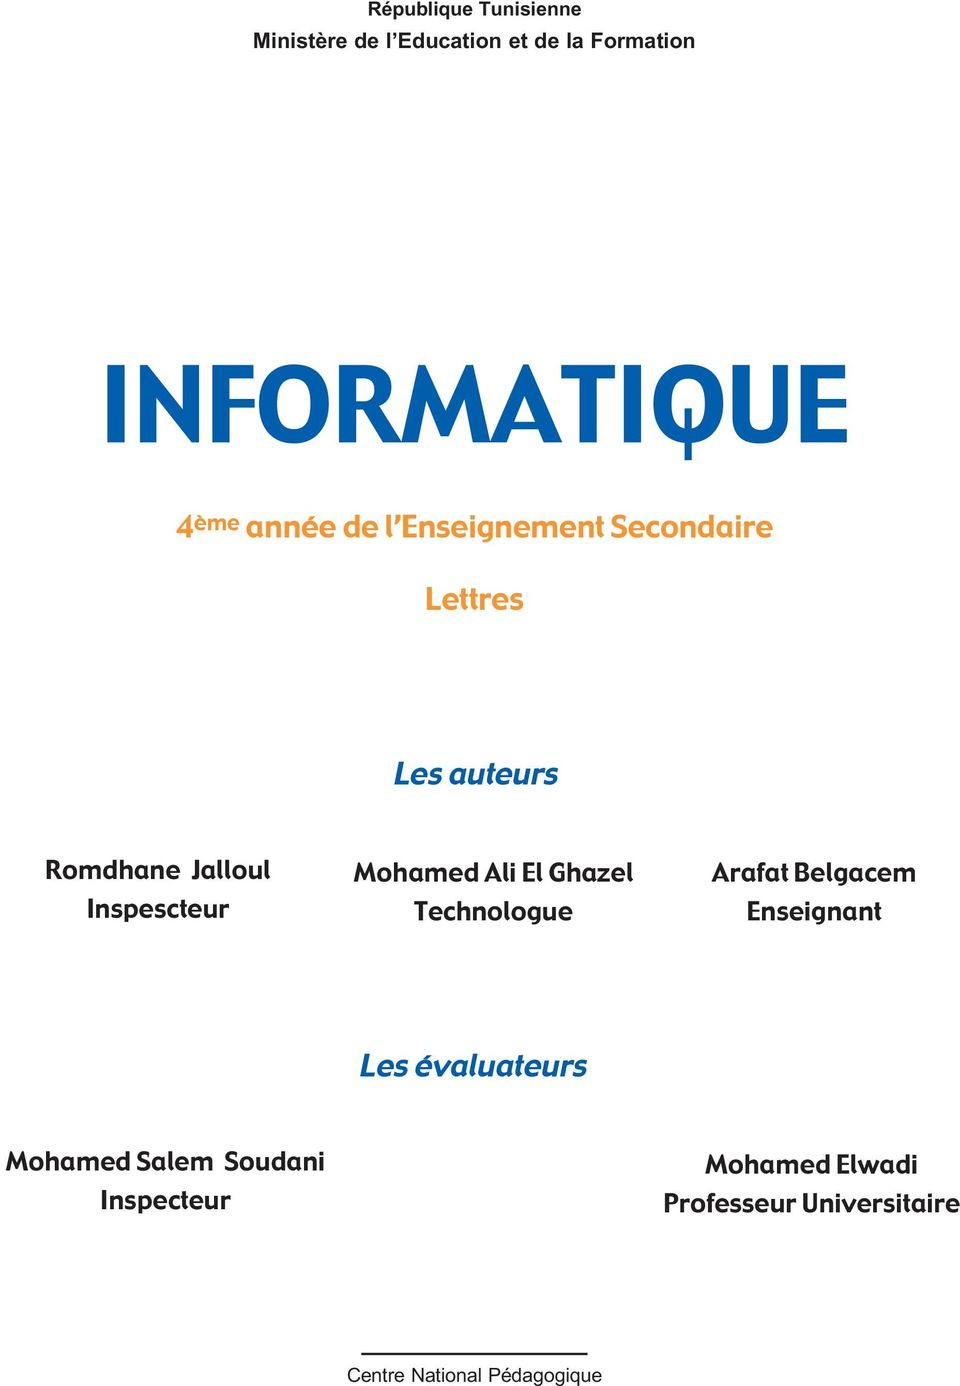 Mohamed Ali El Ghazel Technologue Arafat Belgacem Enseignant Les évaluateurs Mohamed